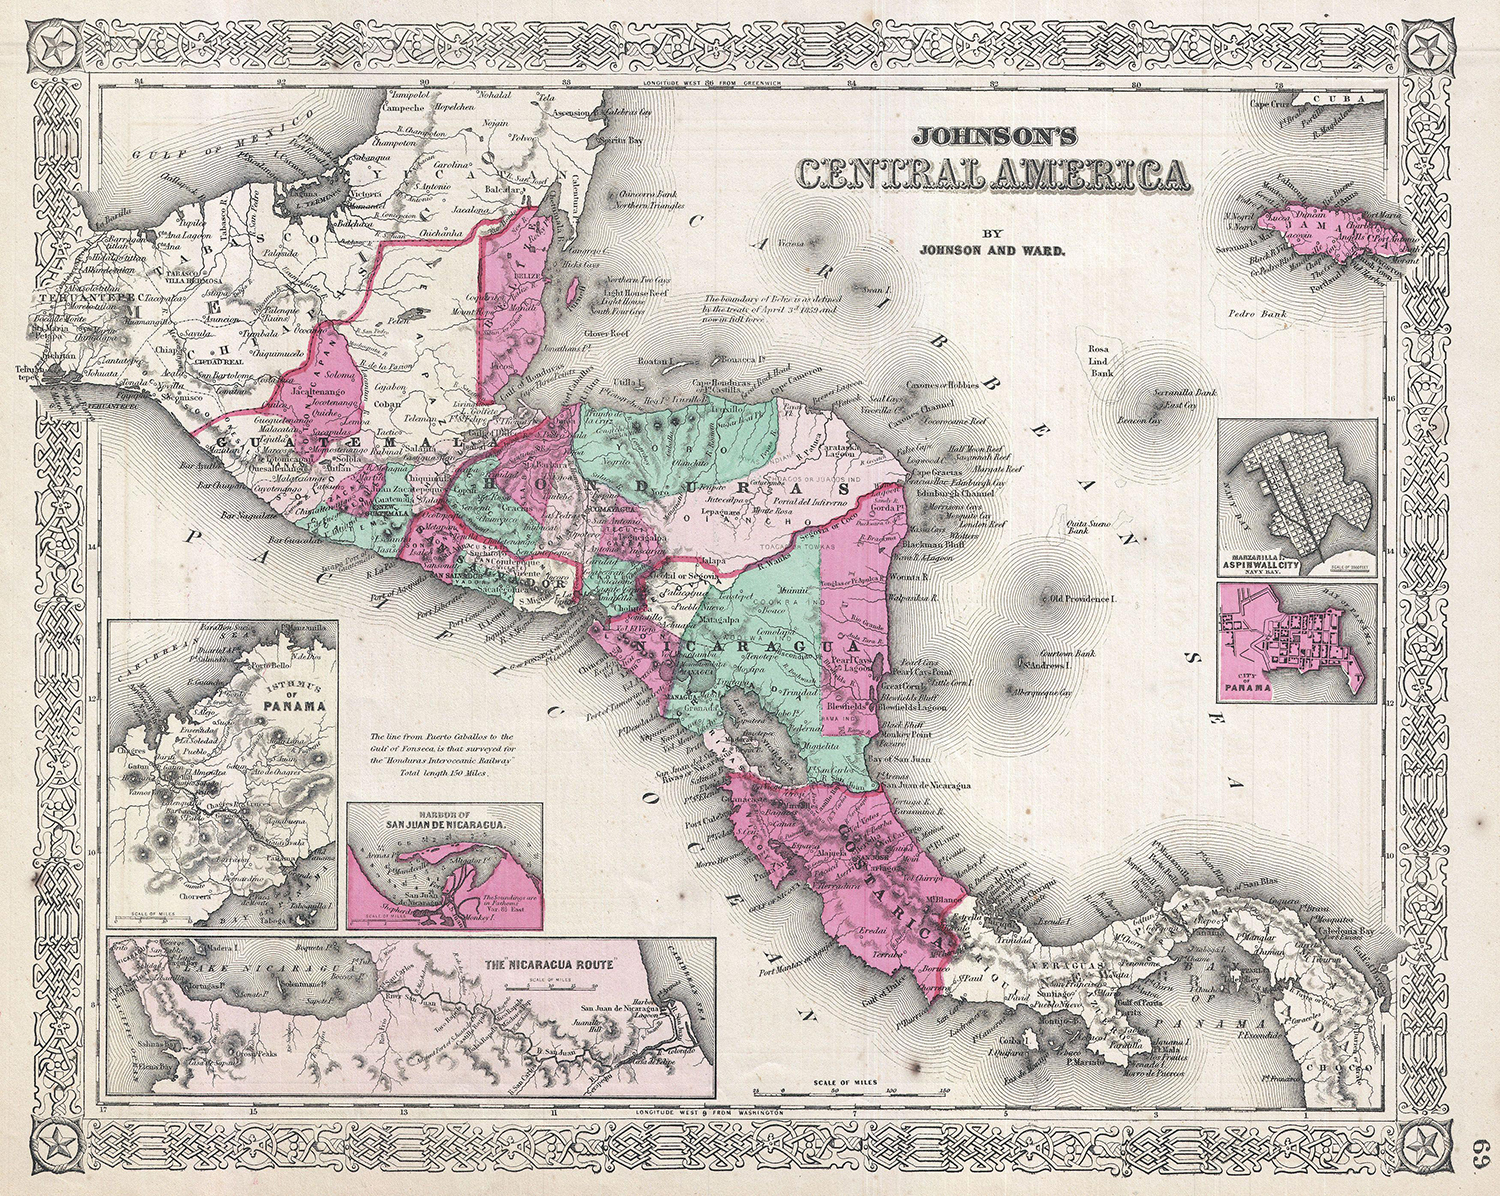 Johnson's Central America, 1864. The Mosquito Coast roughly corresponds with the eastern coast of Nicaragua, starting in southern Honduras.